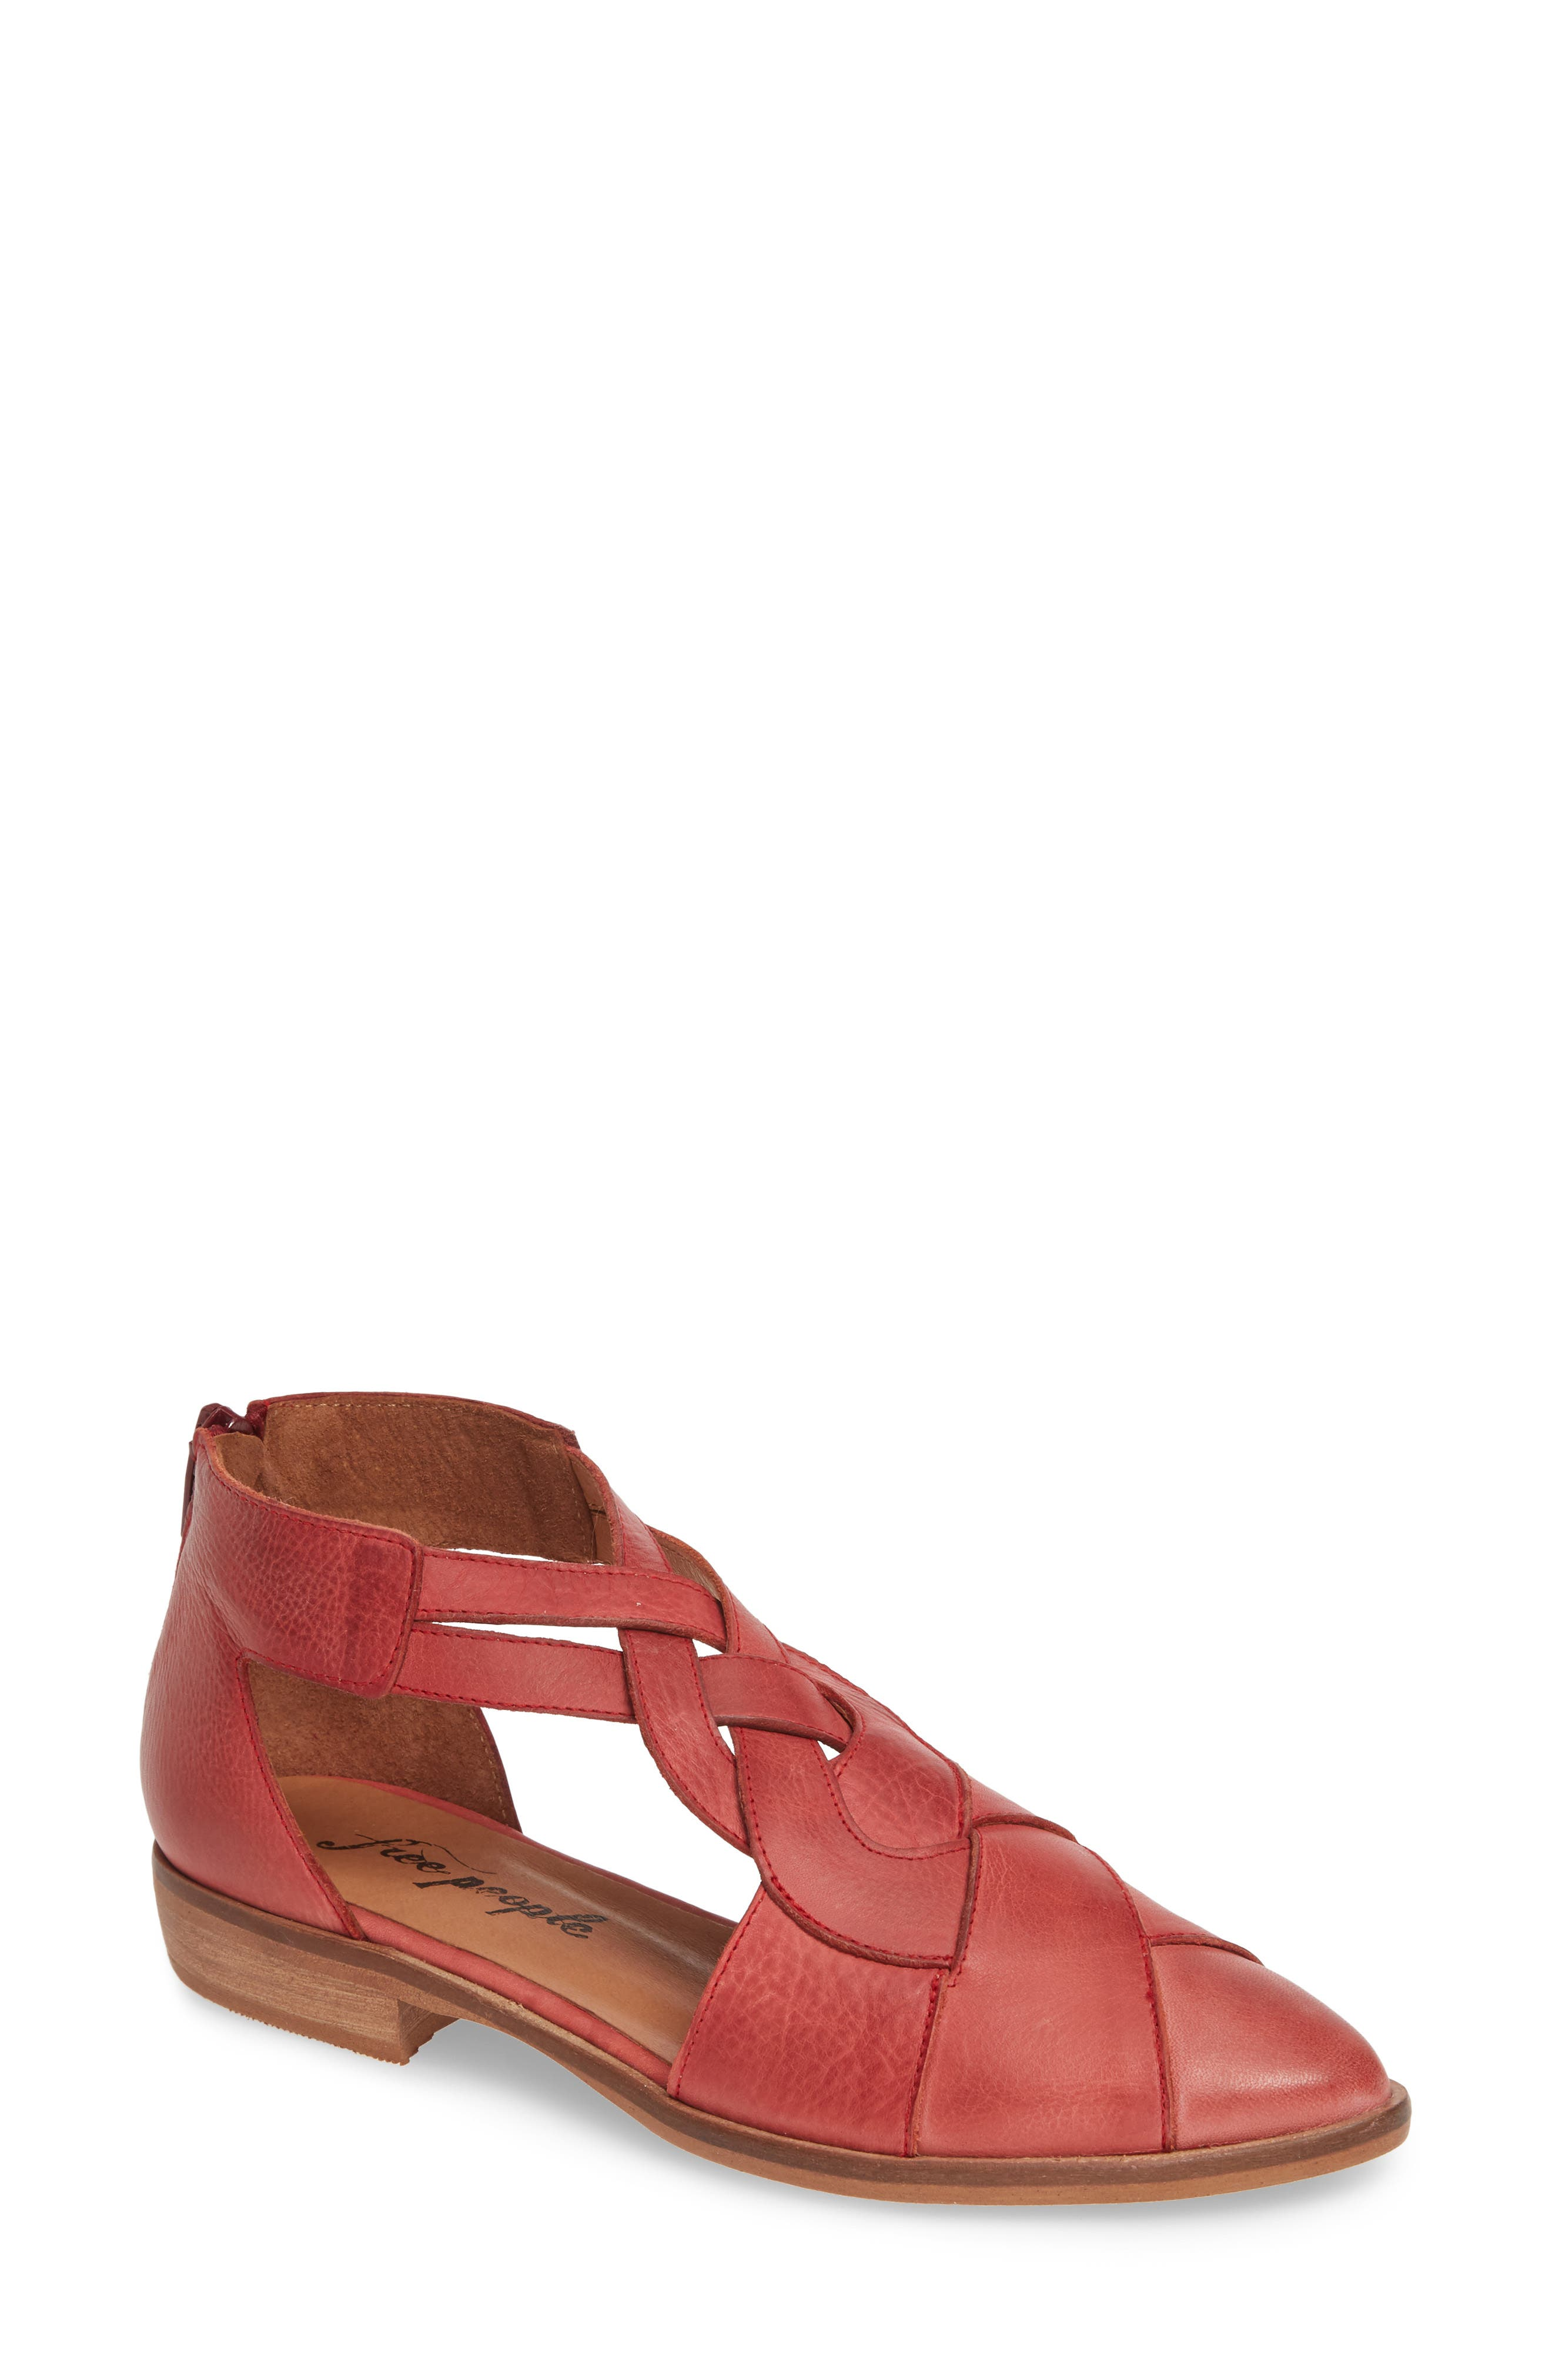 Free People Wanderlust Braided T-Strap Flat, Red